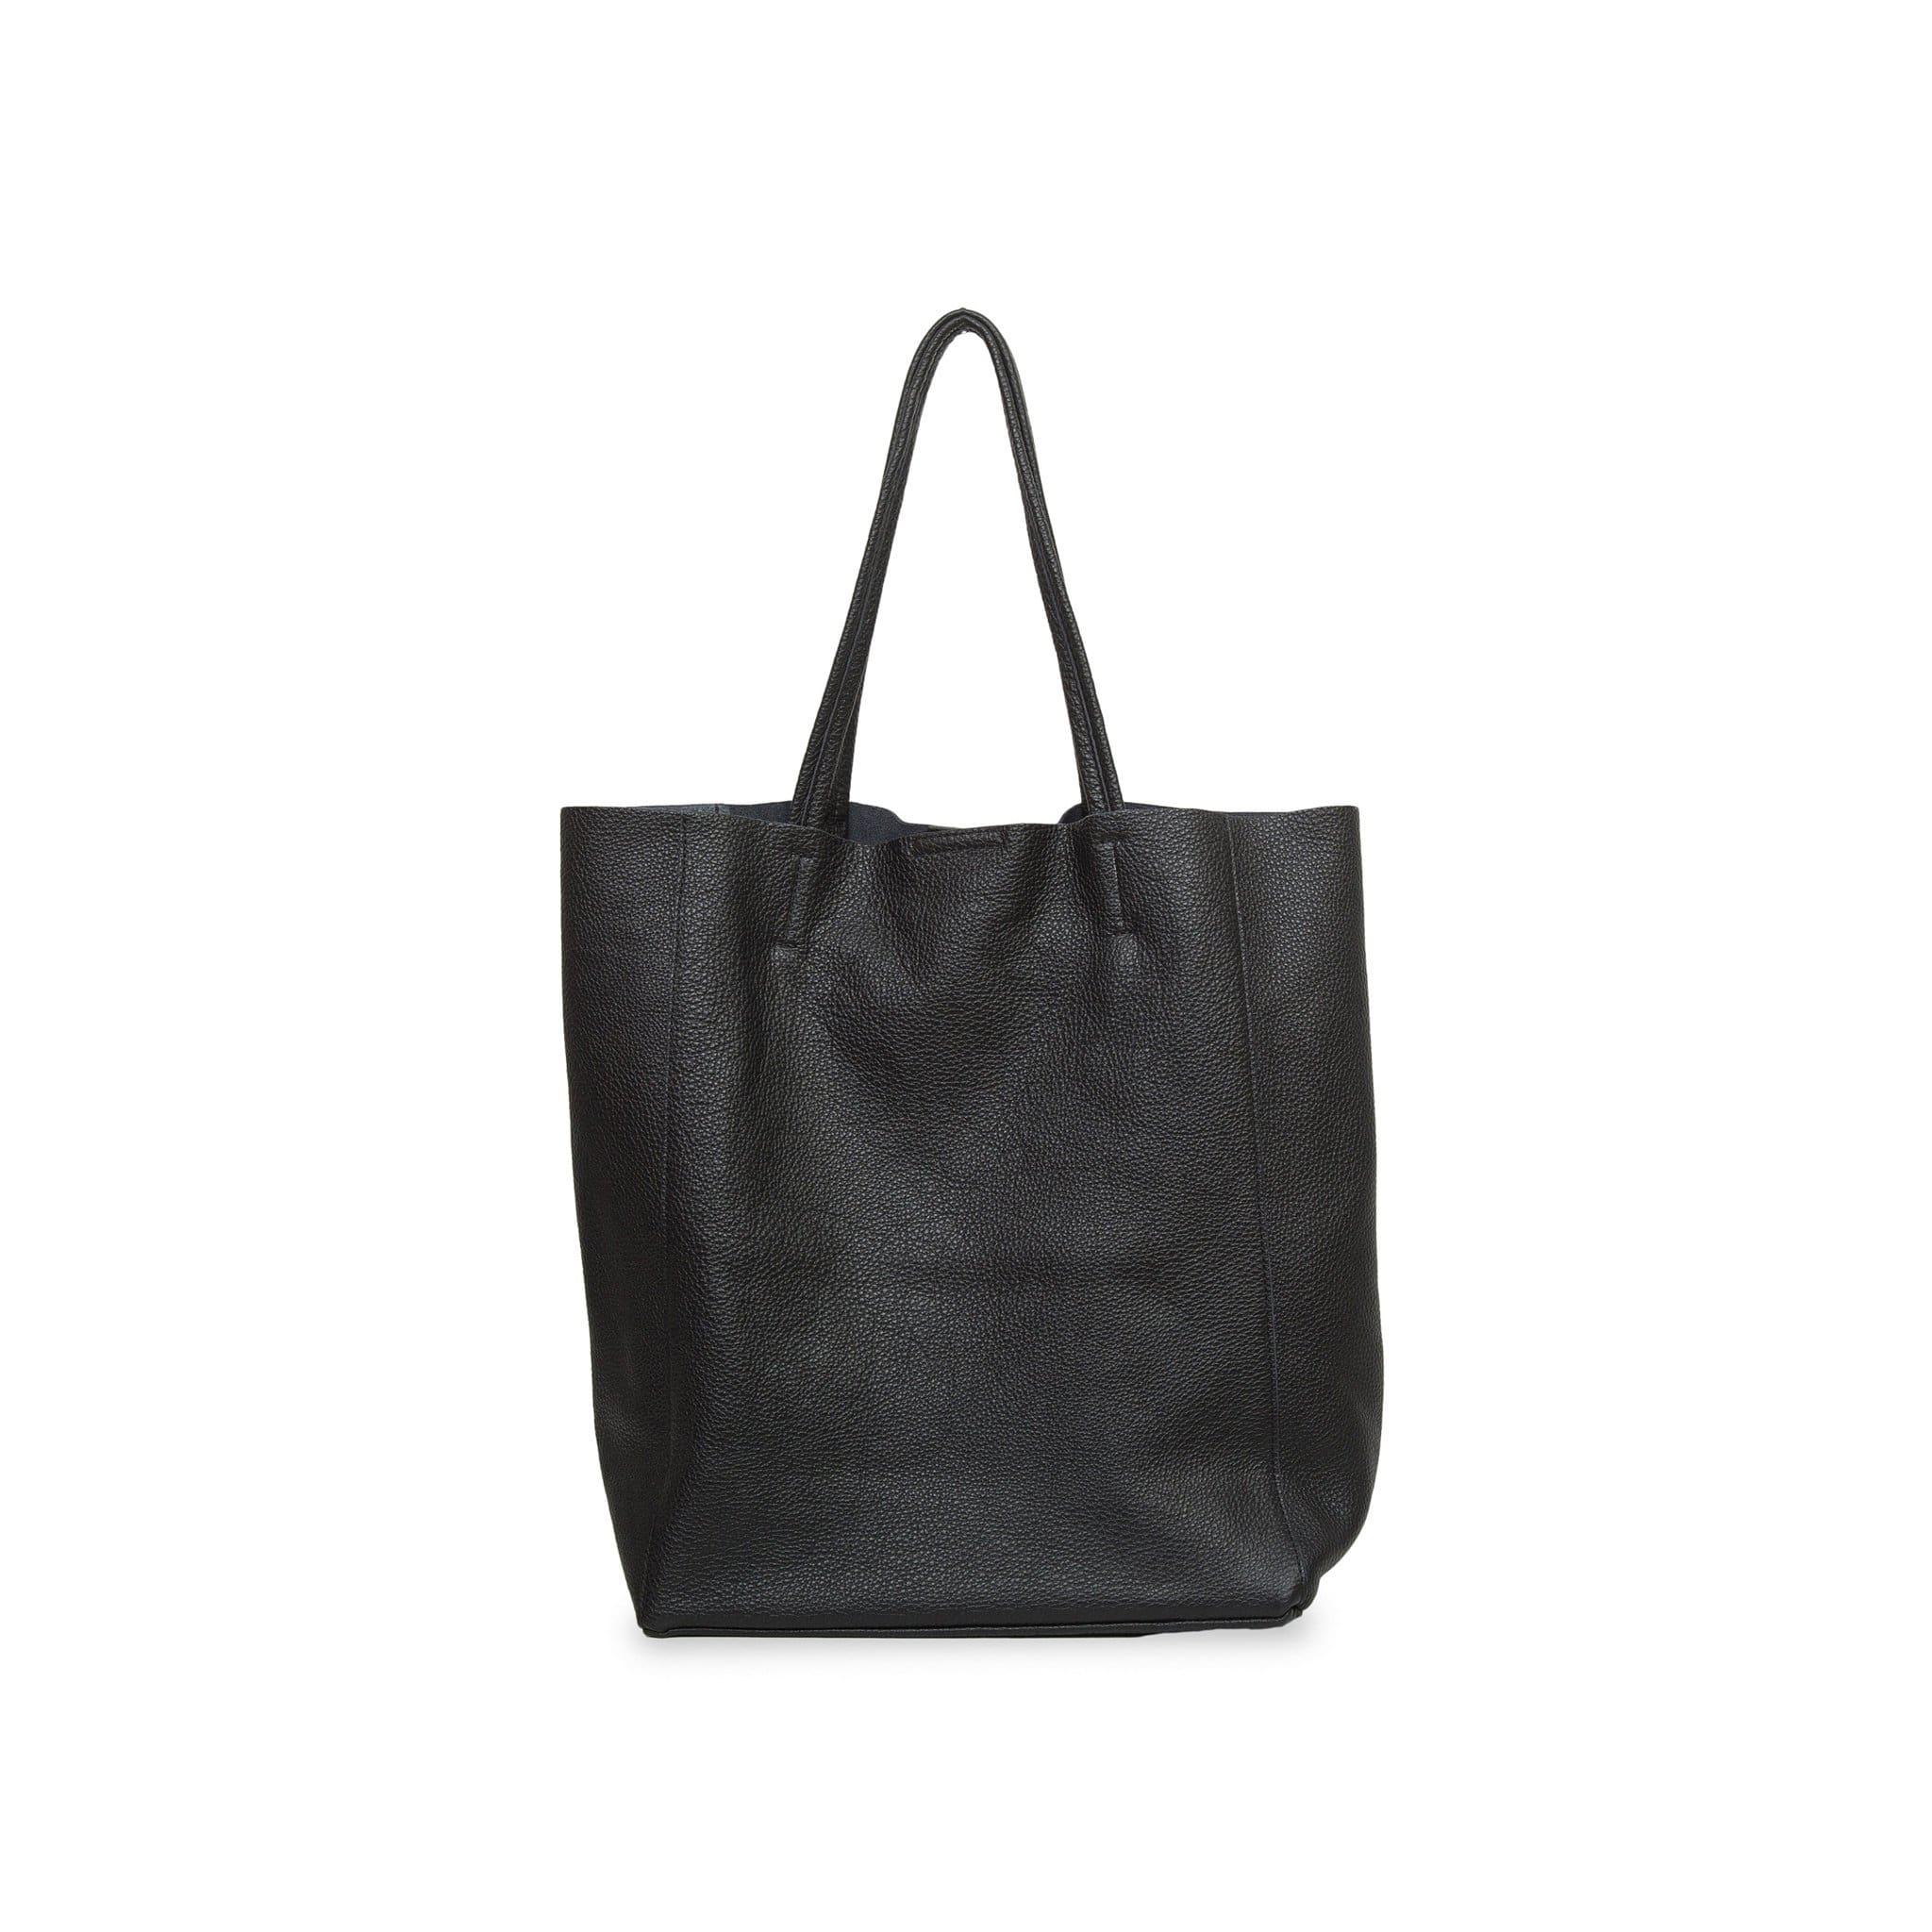 Lidia Palermo Soft Leather Tote - Black